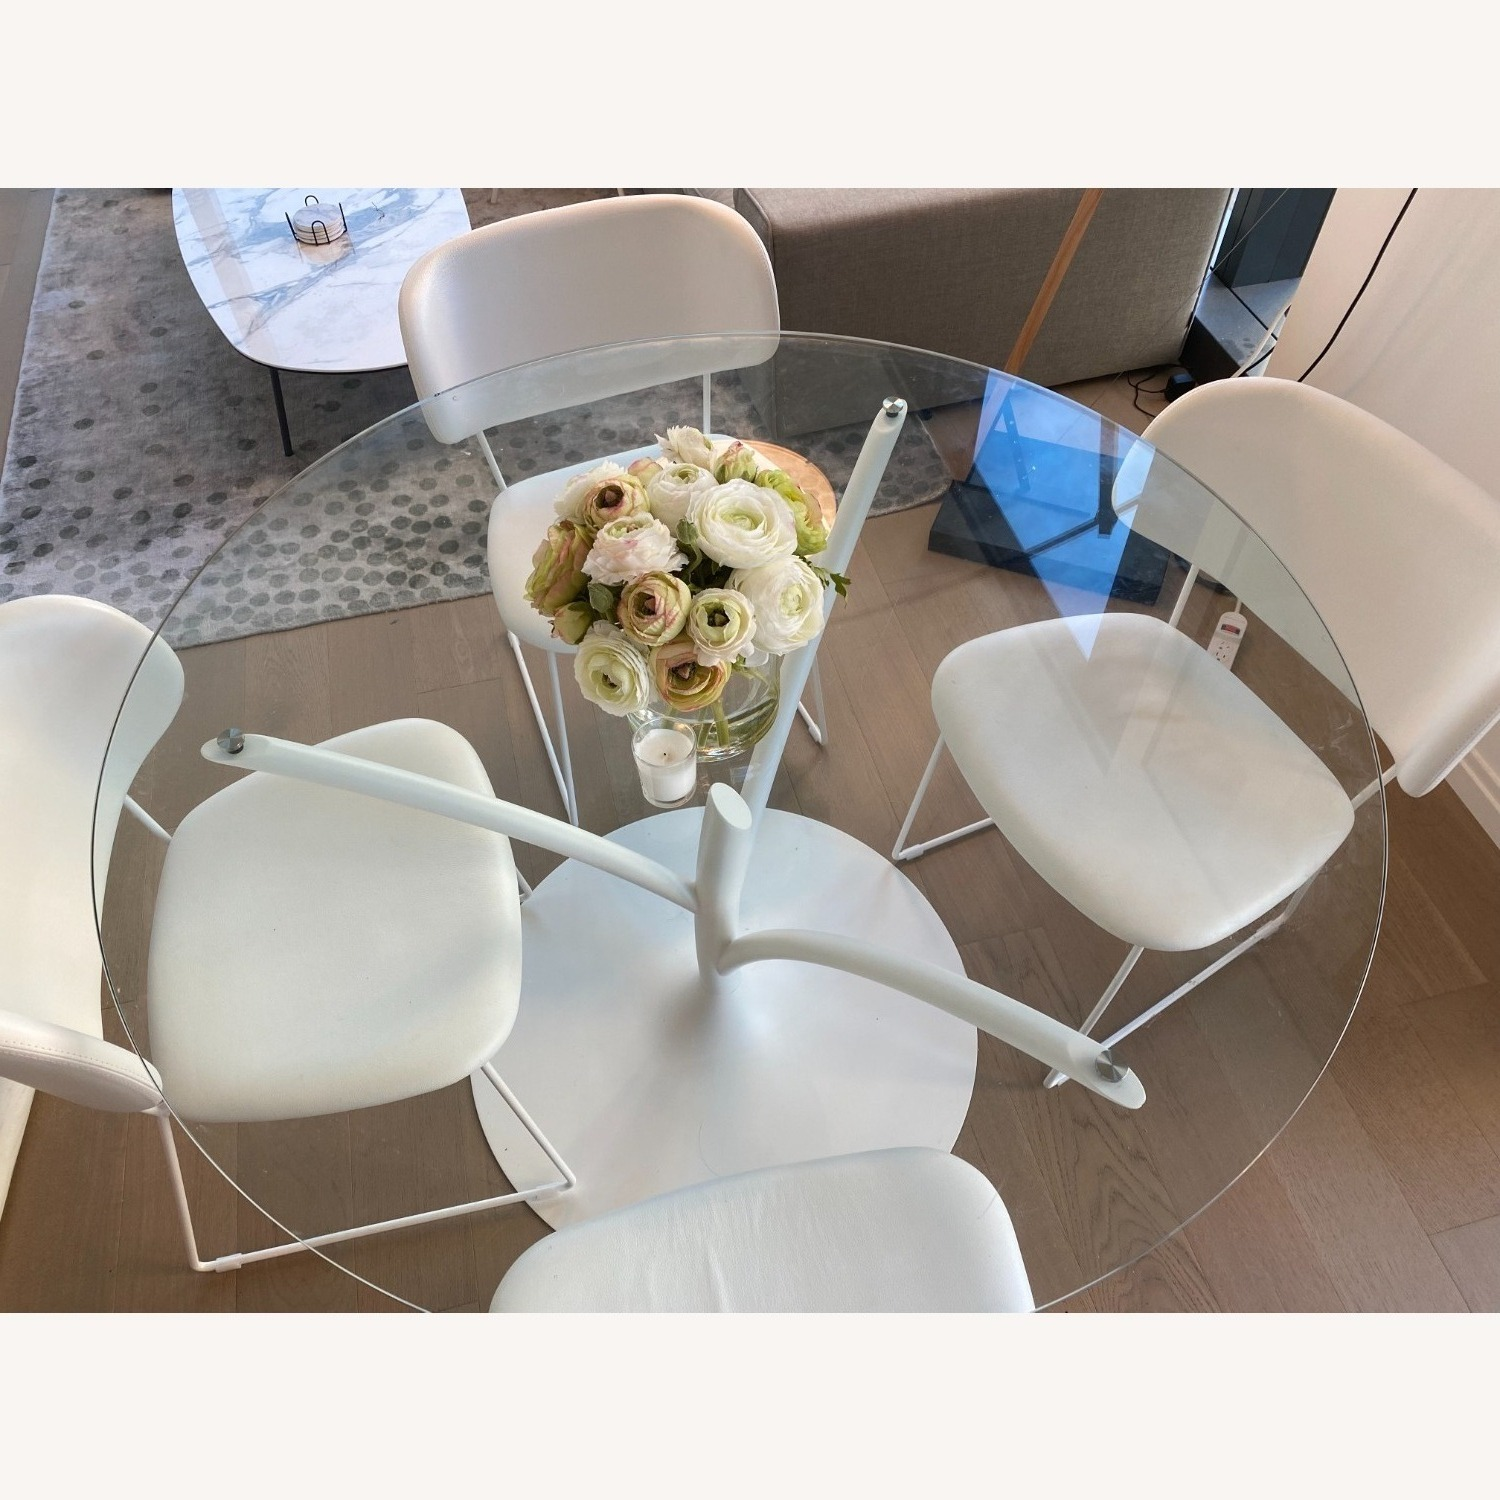 Calligaris Acacia Round Glass Table + 4 Claire Chairs - image-2